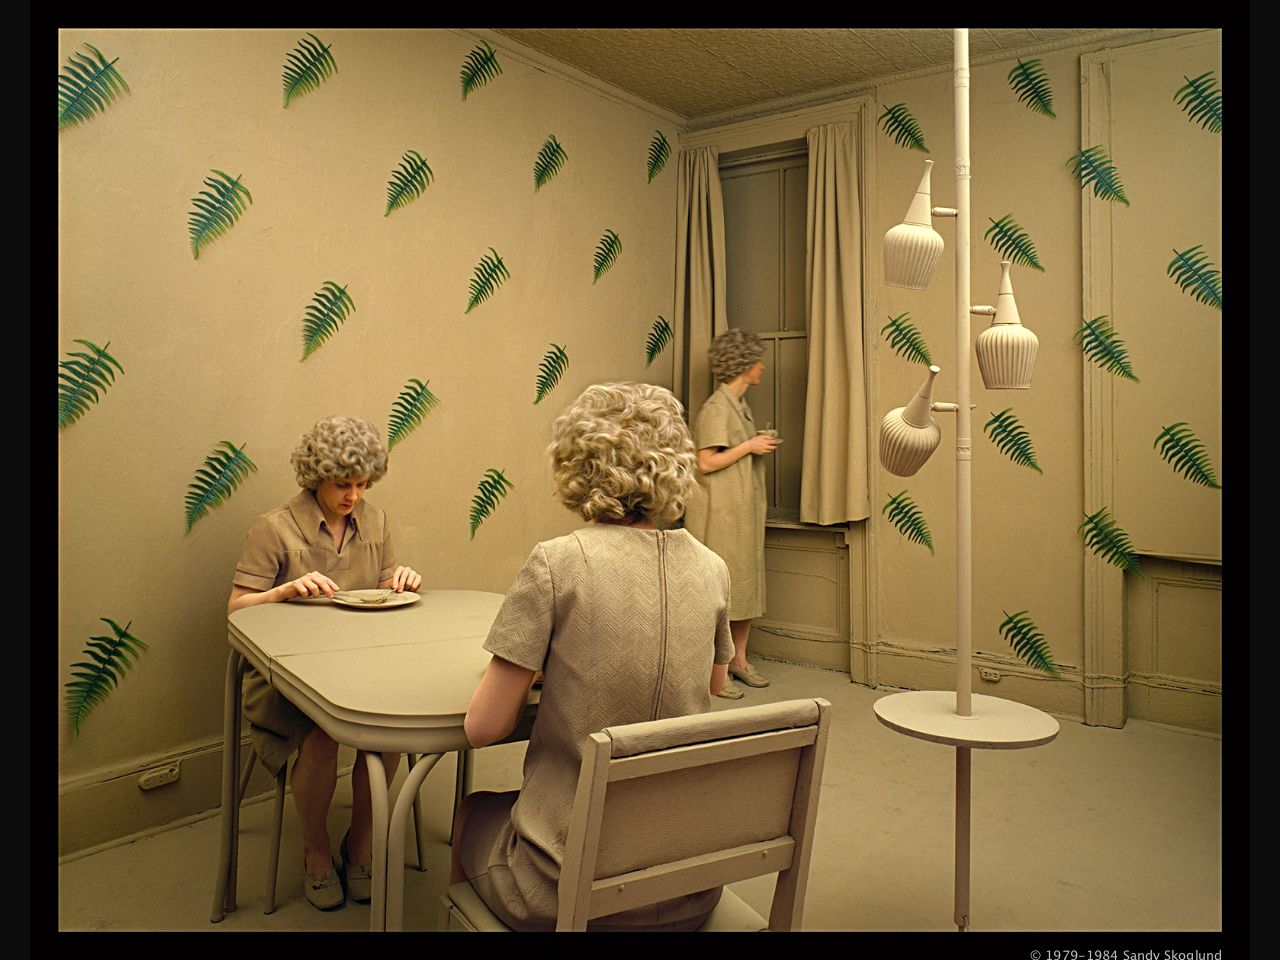 Related image Sandy skoglund, History of photography, Sandy